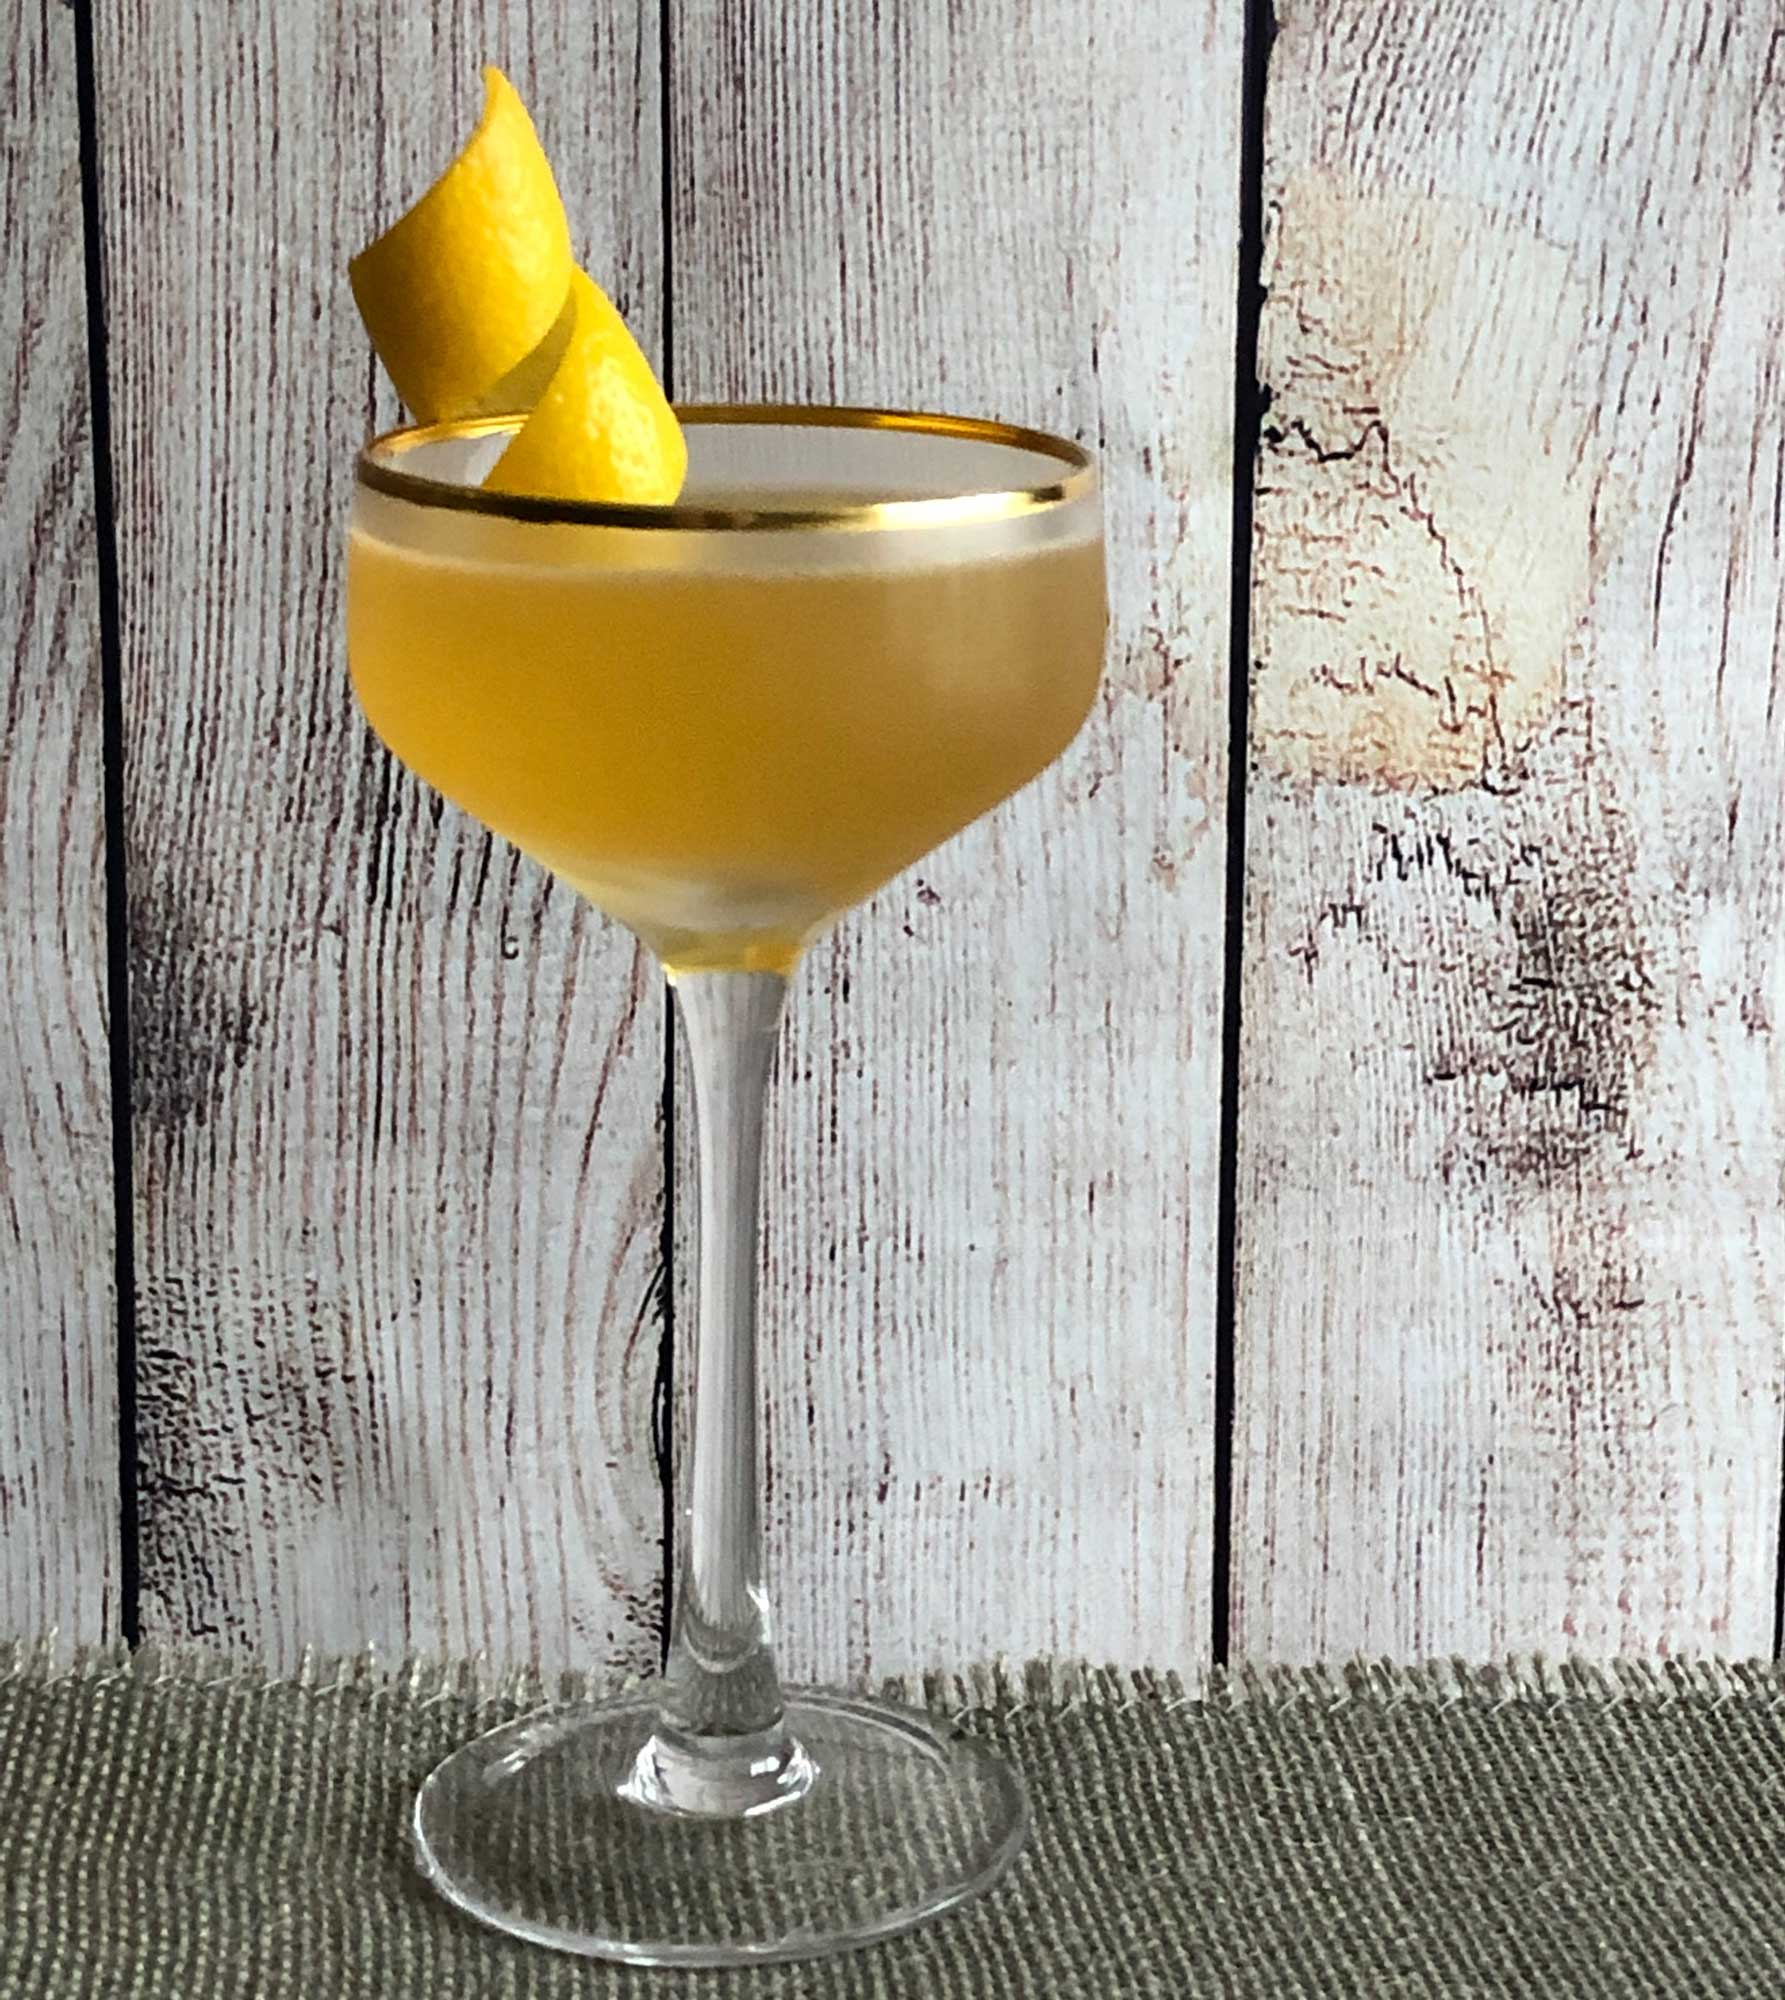 An example of the Havana Cocktail, the mixed drink (cocktail) featuring Blume Marillen Apricot Eau-de-Vie, Kronan Swedish Punsch, Hayman's Royal Dock Navy Strength Gin, lemon juice, and simple syrup; photo by Lee Edwards